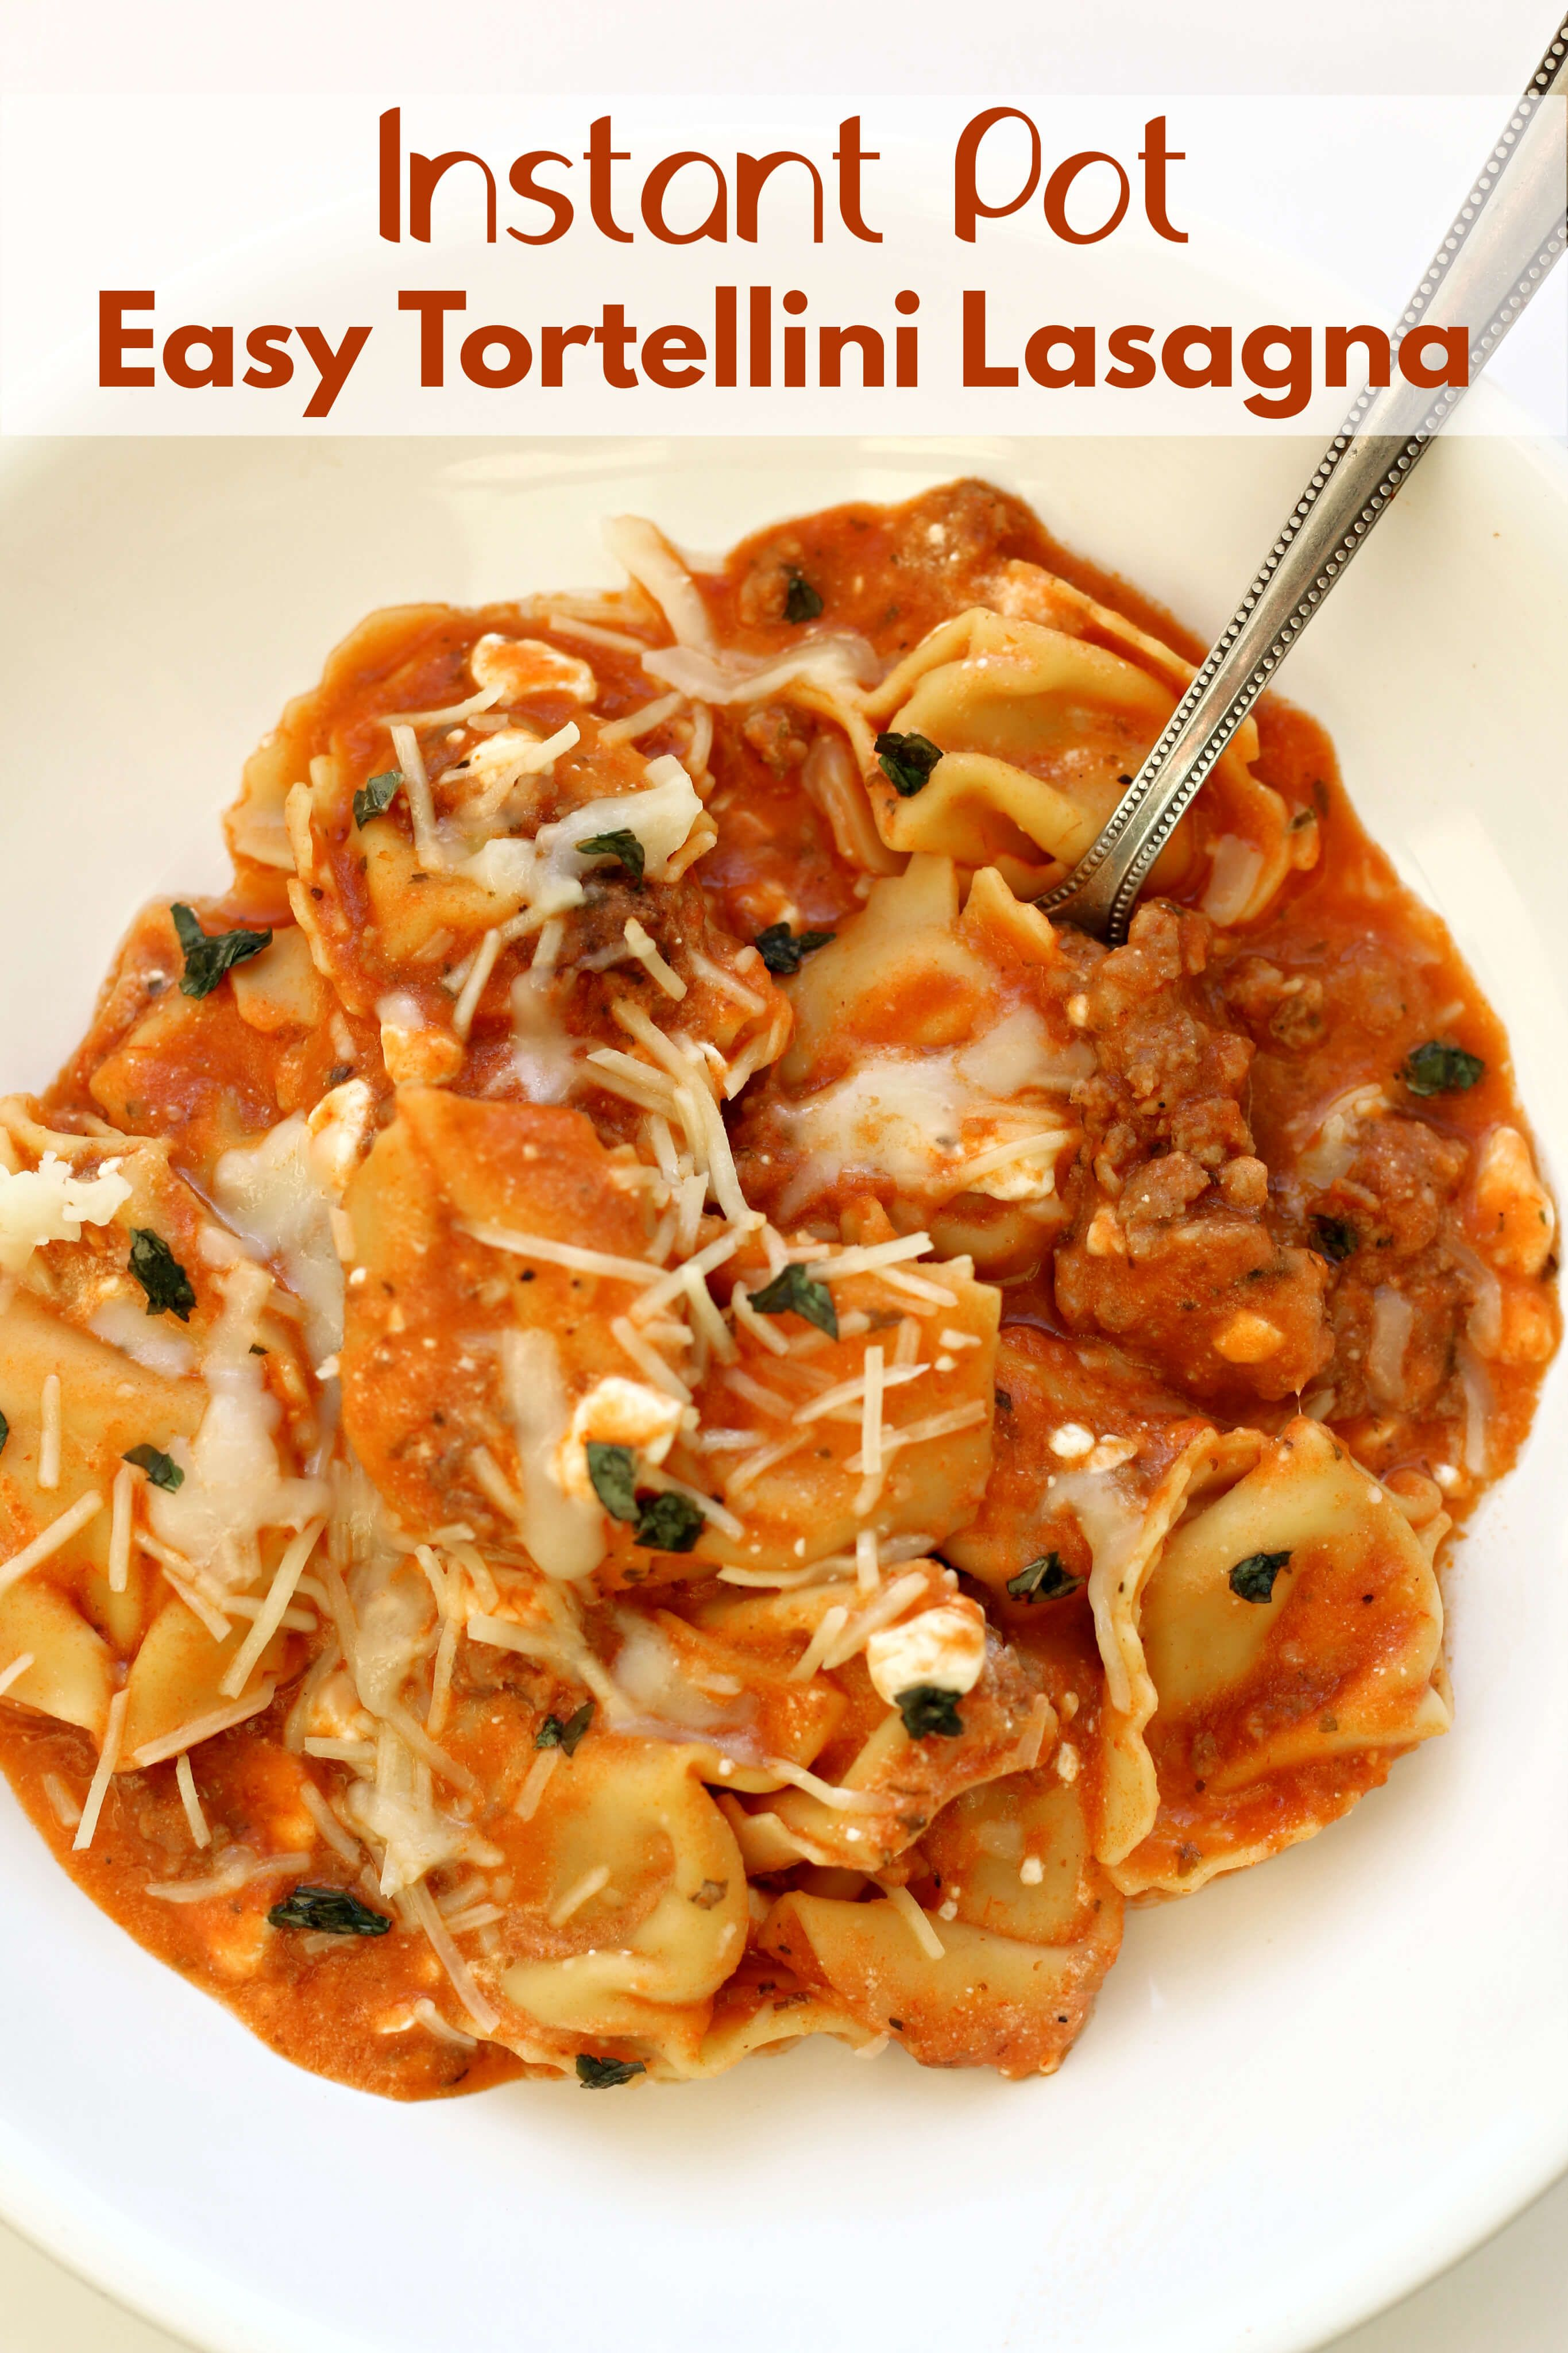 Easy Instant Pot Tortellini Lasagna - 365 Days of Slow Cooking and Pressure Cooking